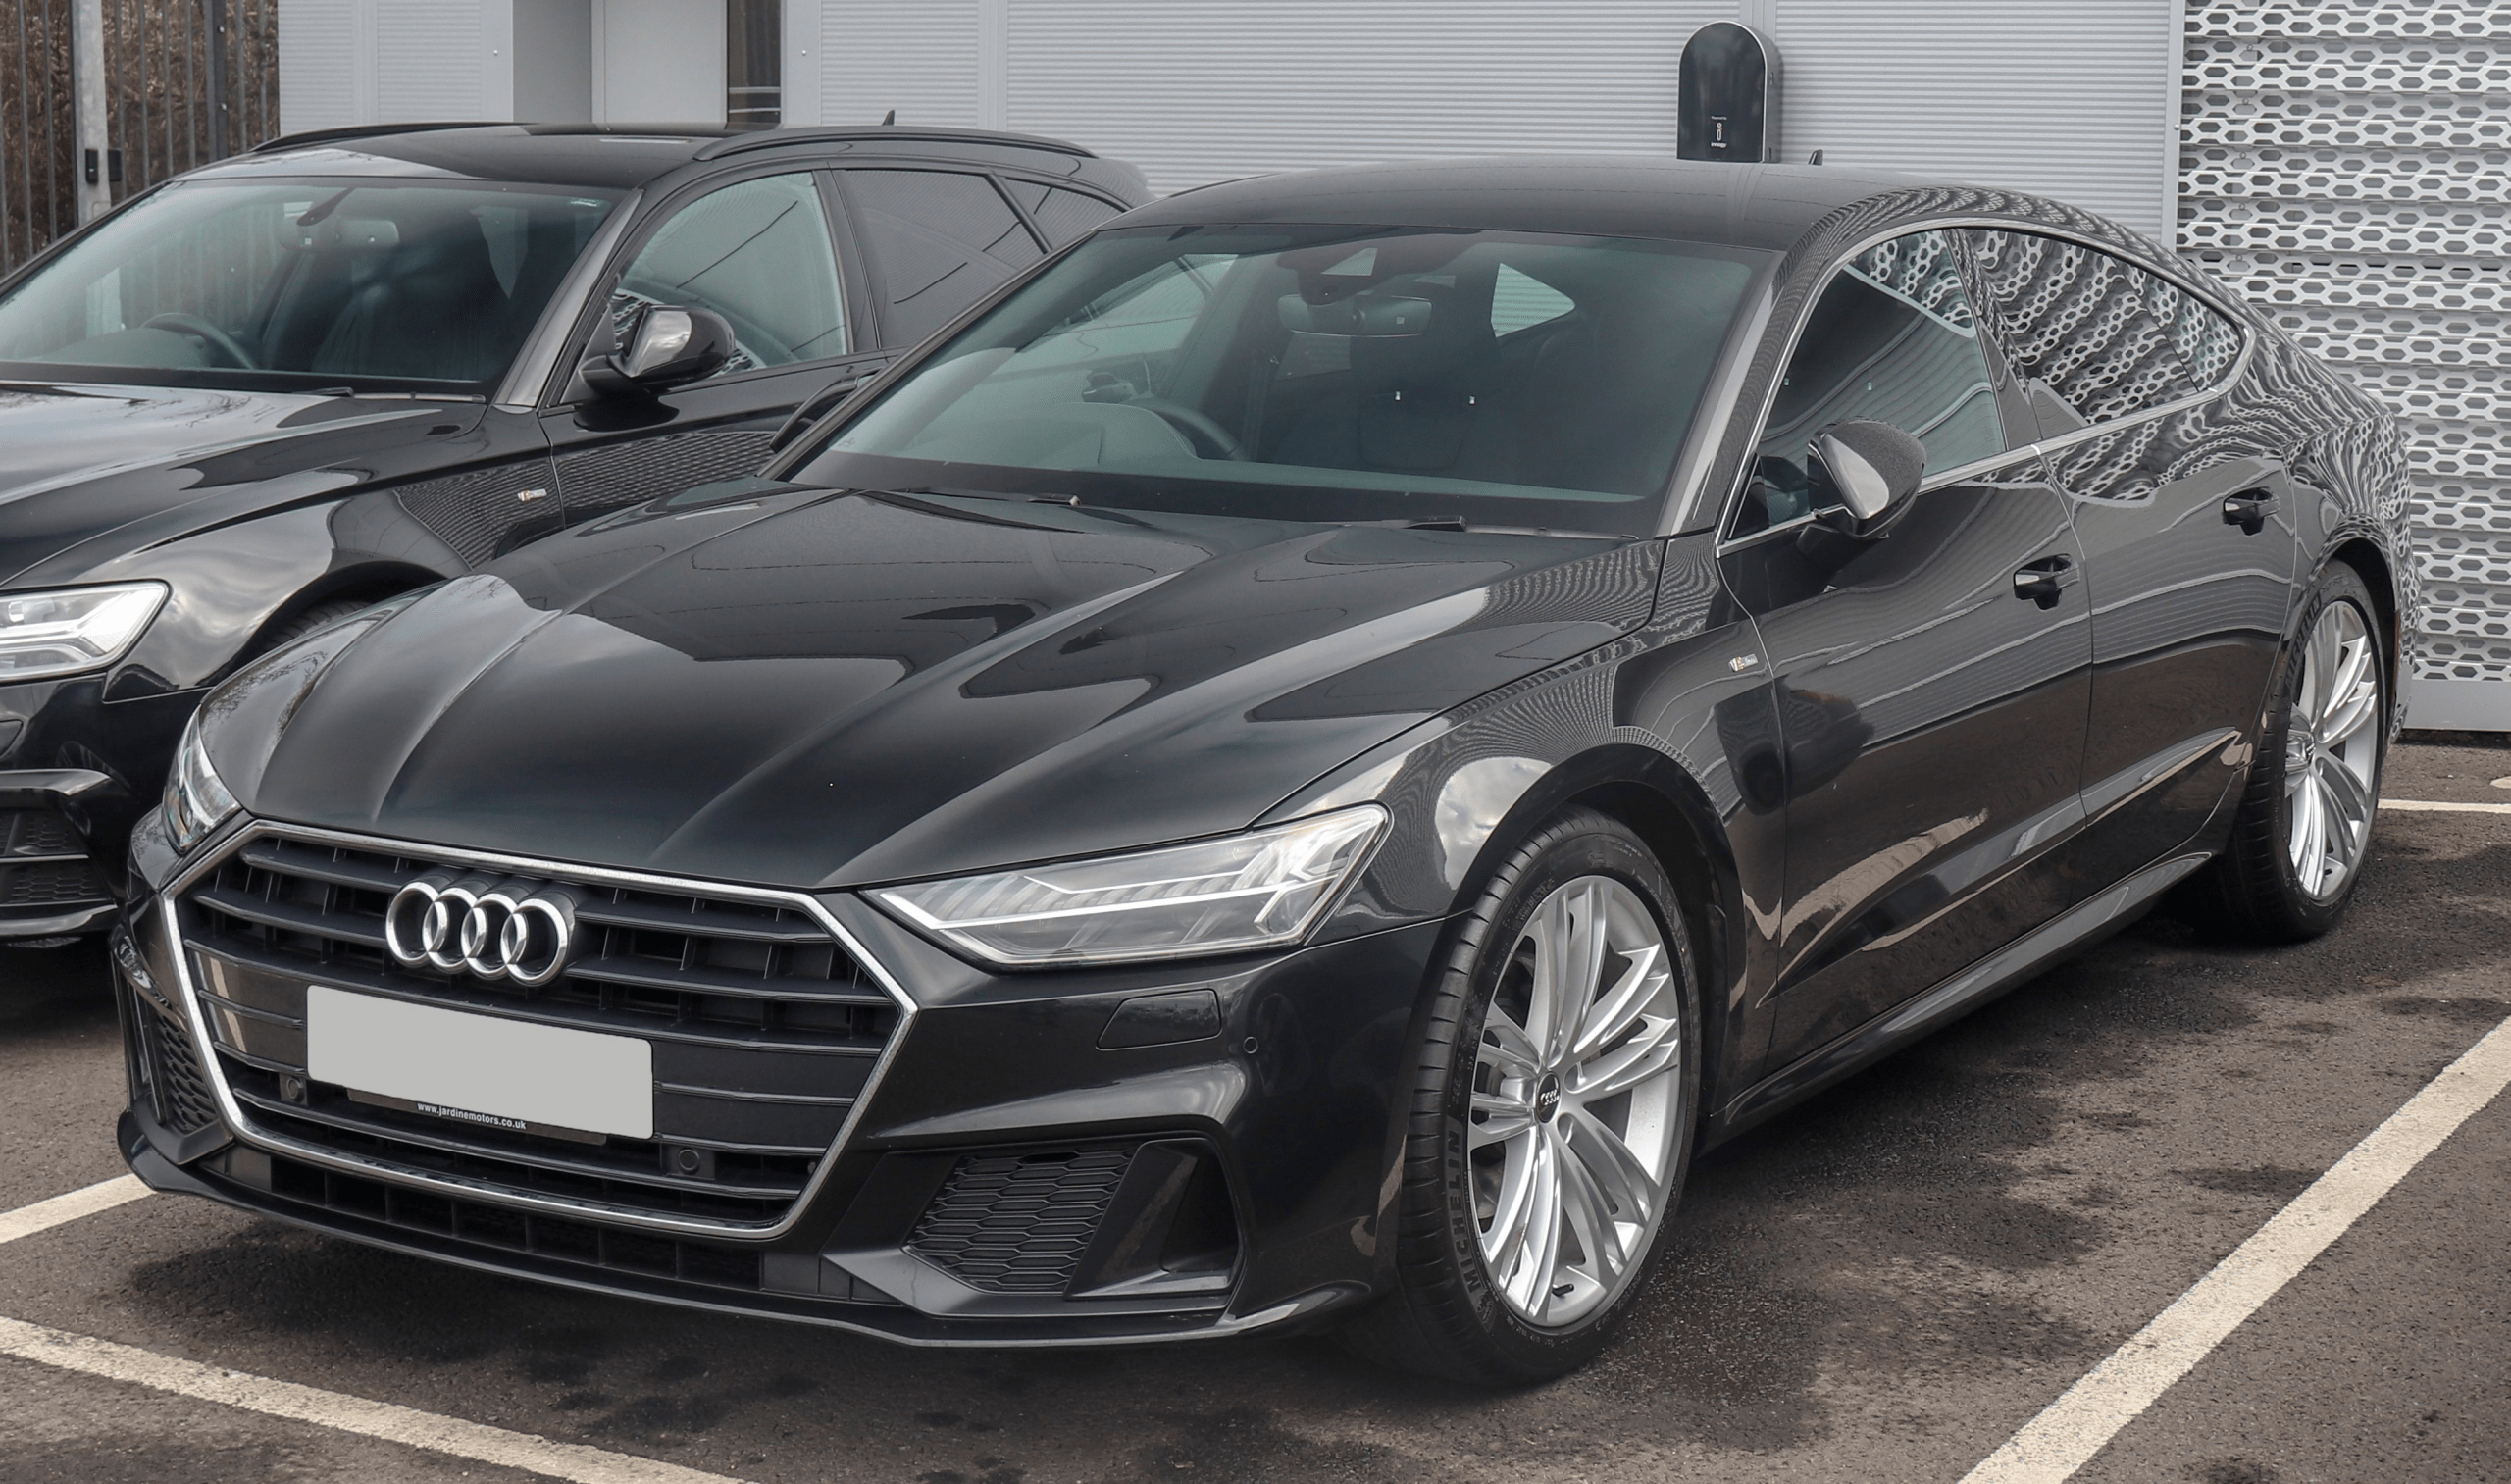 2020 Audi A6 Comes Review And Release Date In 2020 Audi A7 Audi Audi A6